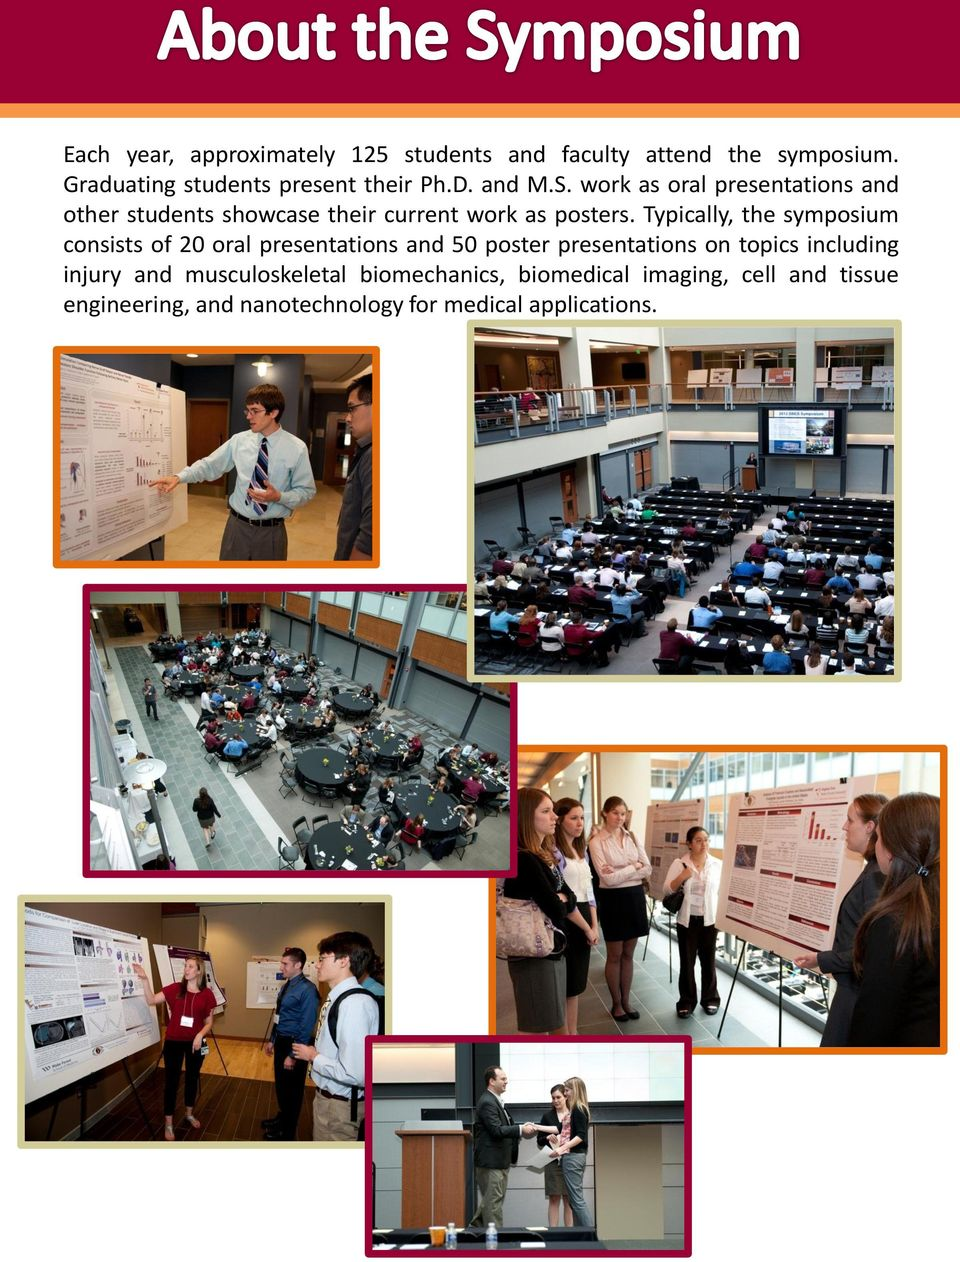 Typically, the symposium consists of 20 oral presentations and 50 poster presentations on topics including